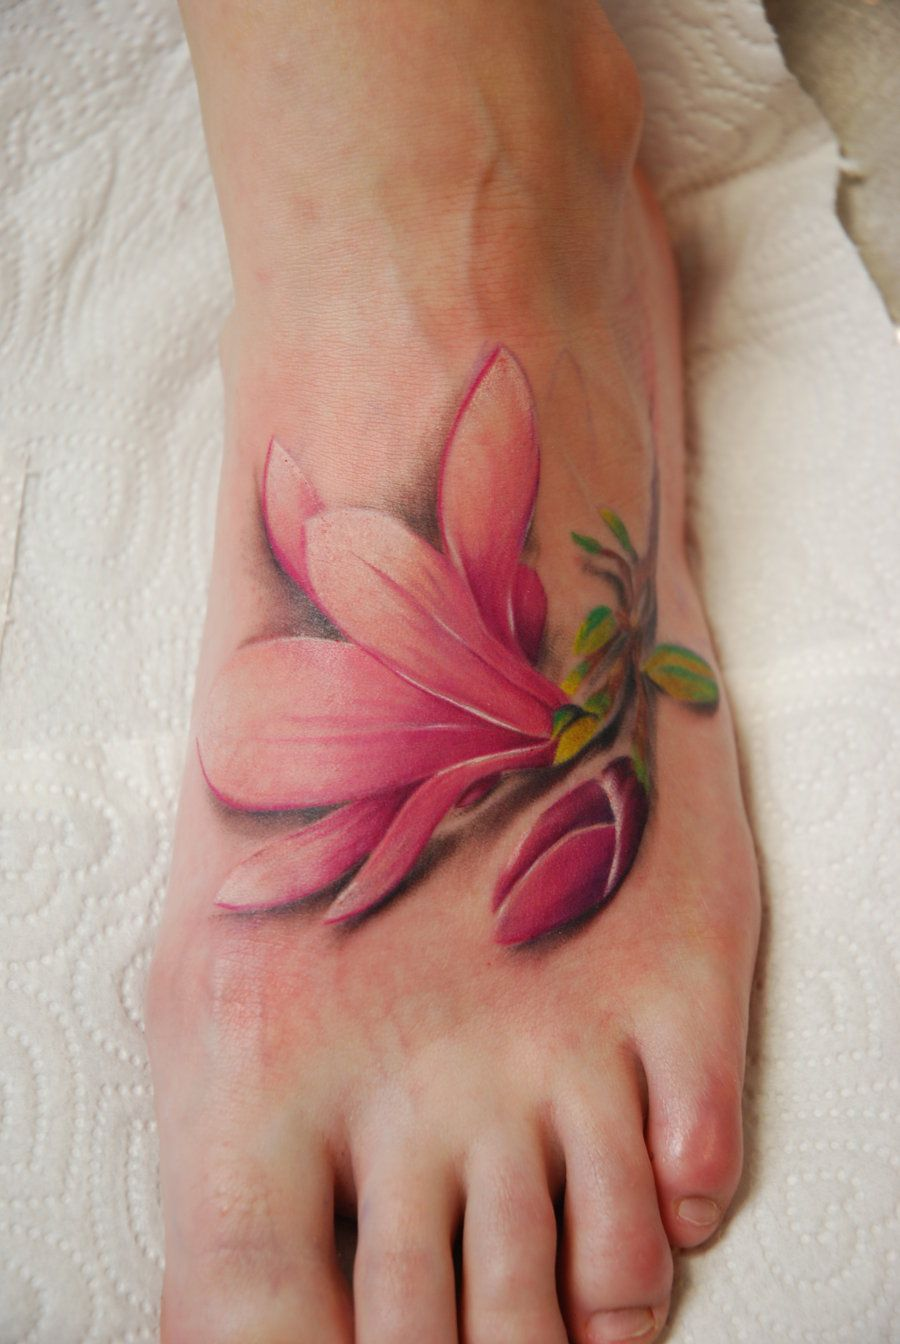 I Was Thinking Of Doing A Foot Tattoo With My Favorite Flower And